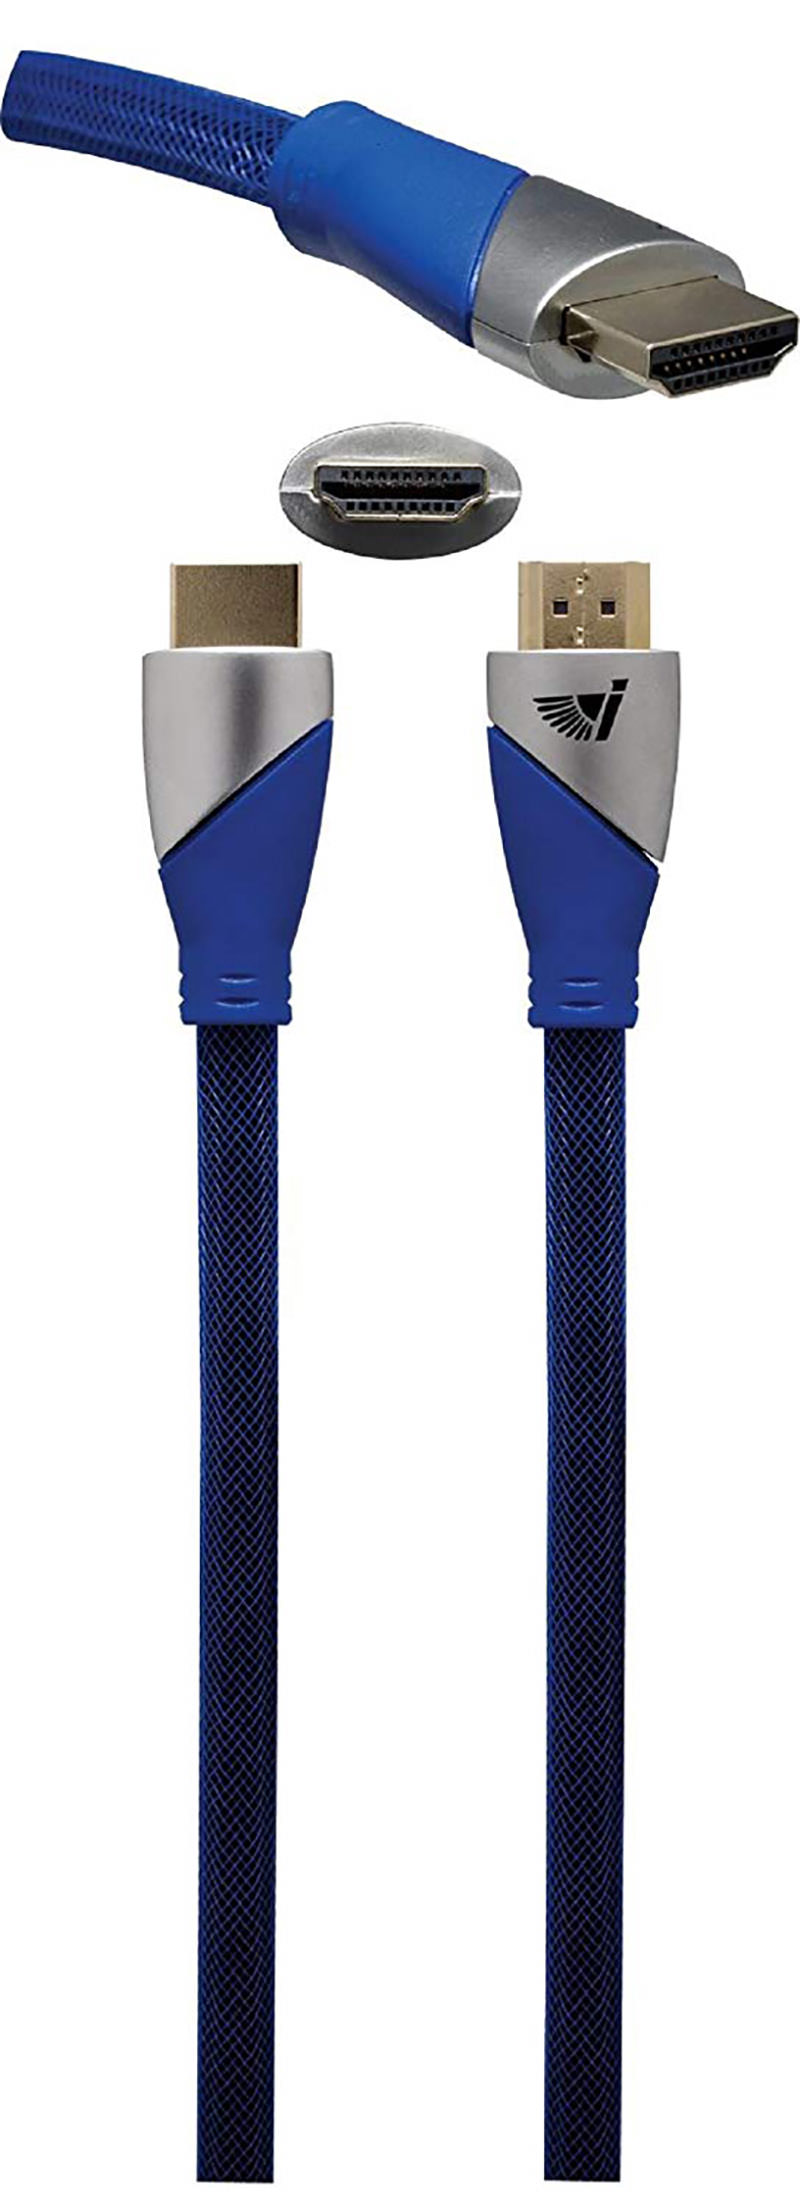 Icarus Blue Angel HDMI Cable with Ethernet